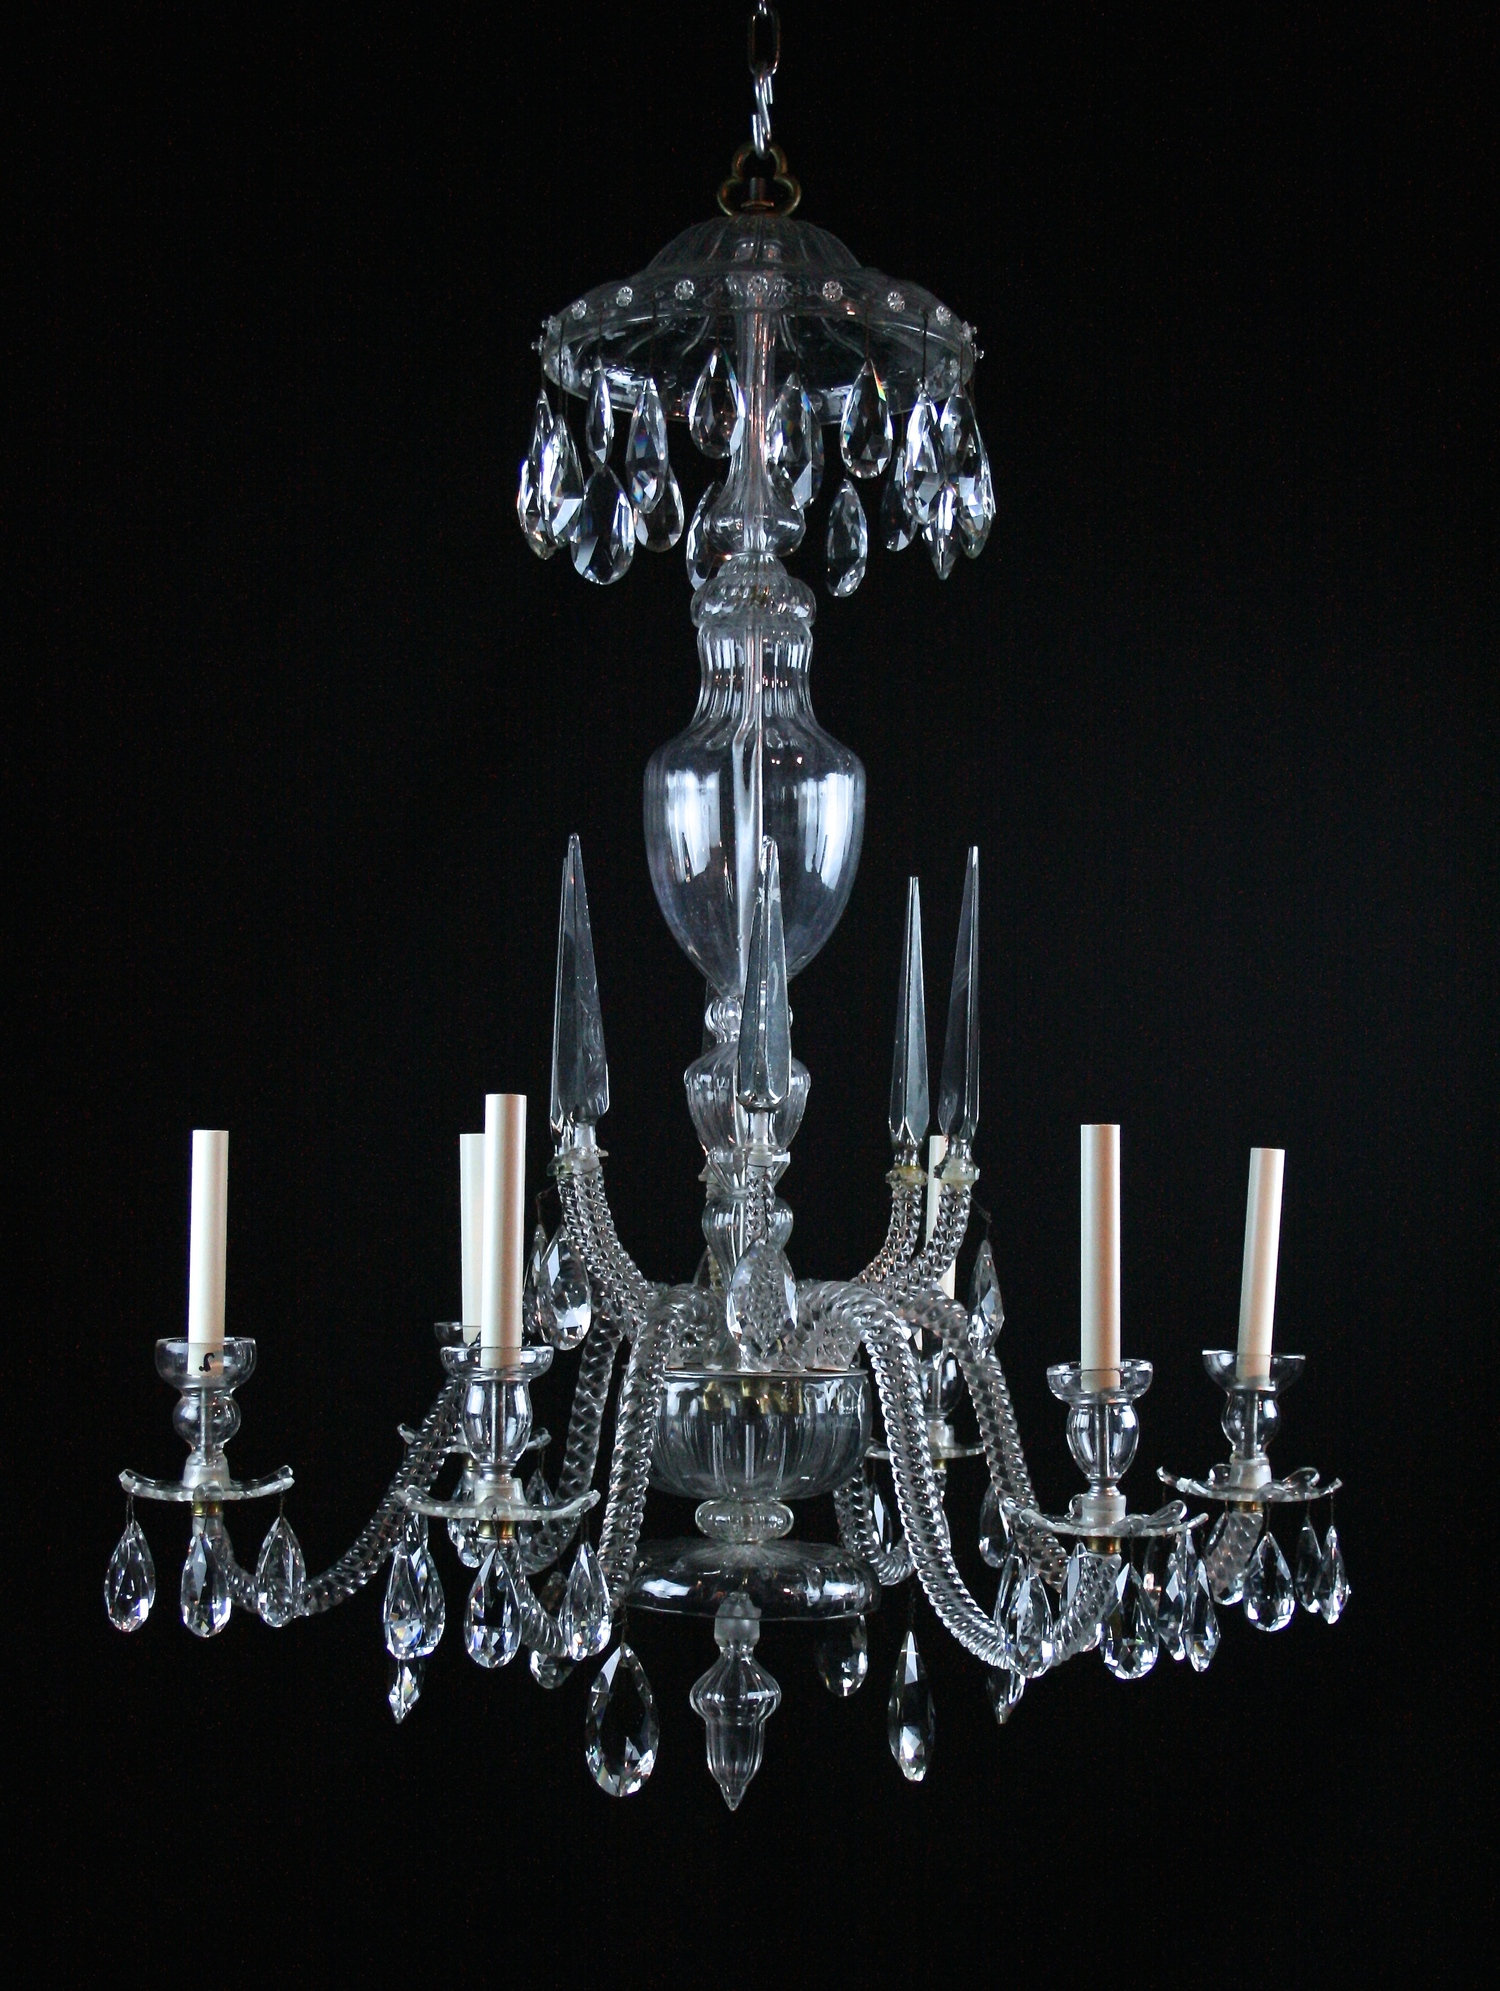 Nesle inc antique chandeliers and reproductions new yorkandeliers st 1390g arubaitofo Image collections